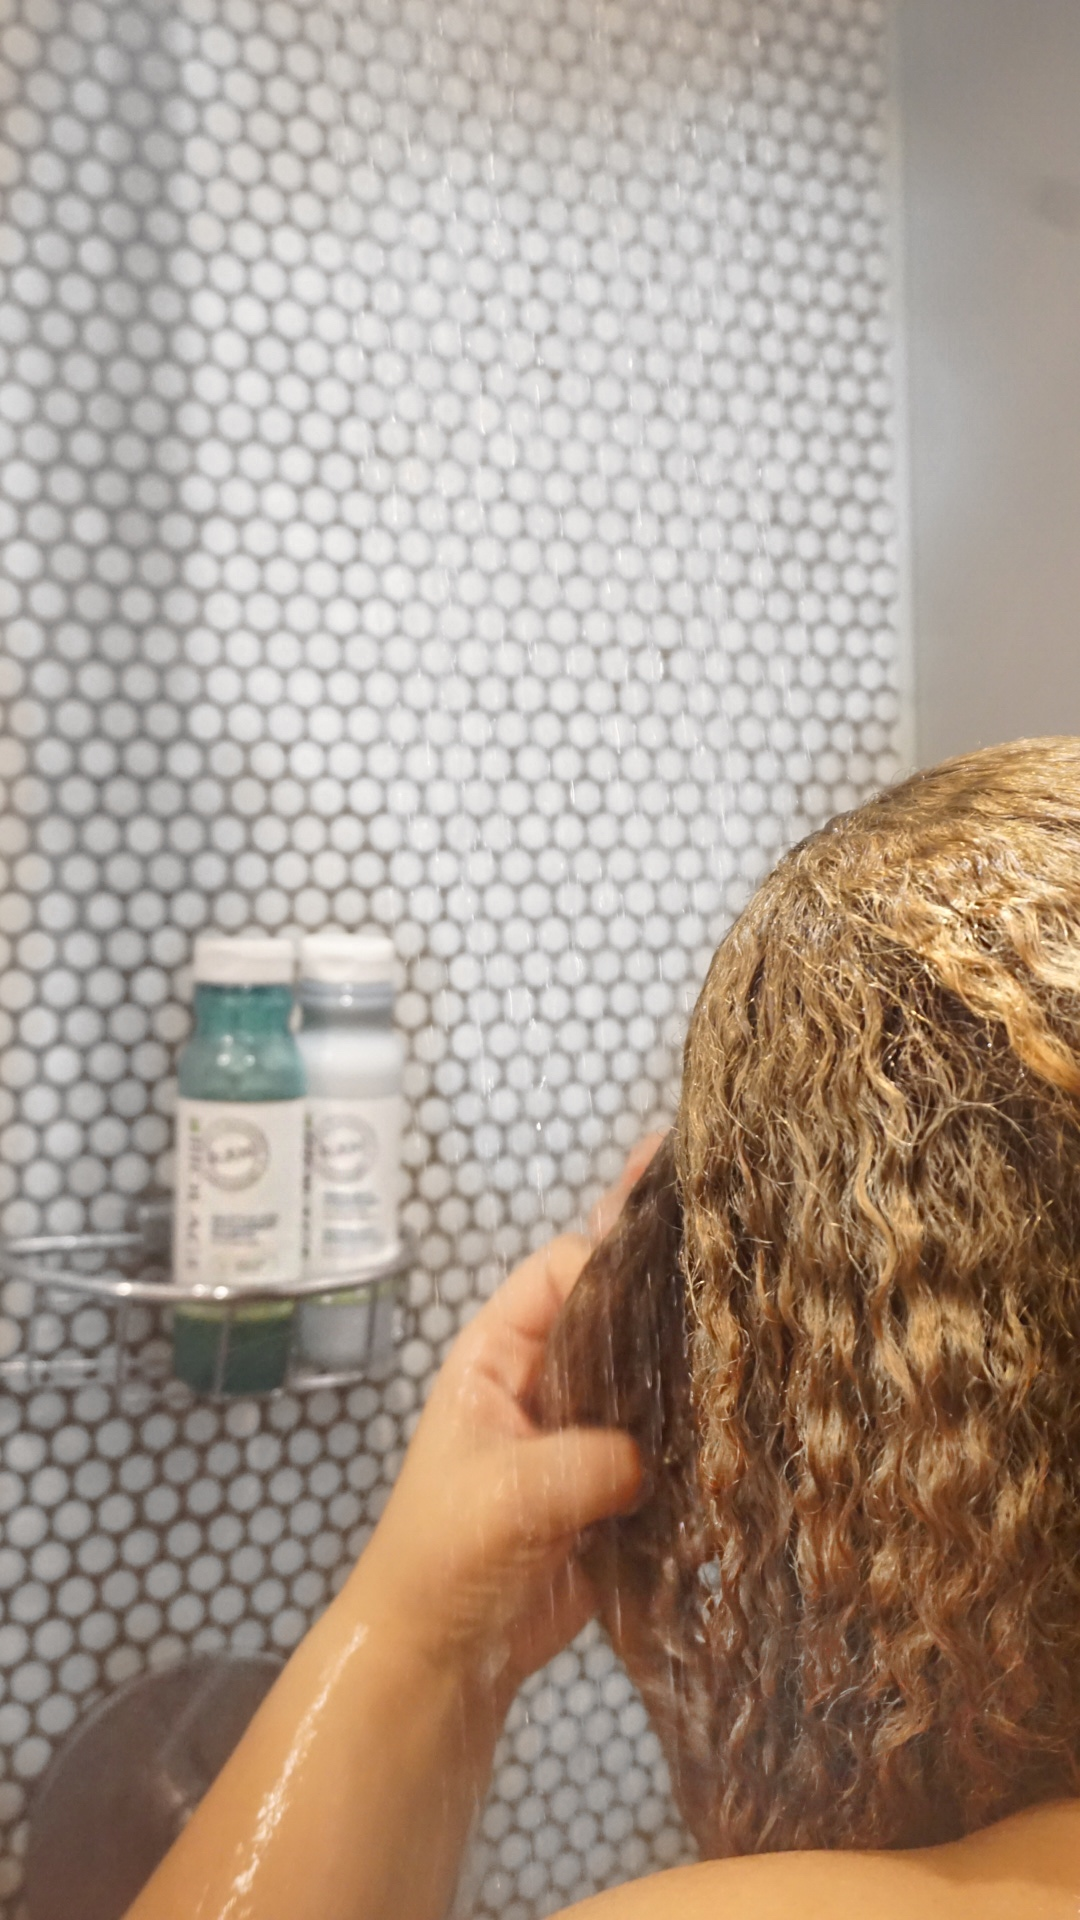 While you are keeping your scalp clean and clear keep your shower clear and clean. Meaning get rid of feeling like you are showering in a space that looks like the isle at a Target store . You really don't need all that chaos or products. So, in 2019 get rid of the shampoo and conditioner that has been sitting in your shower for months and introduce a spa like feel to your hair cleansing experience. Choose just one Cleanser and one Conditioner per seasons.